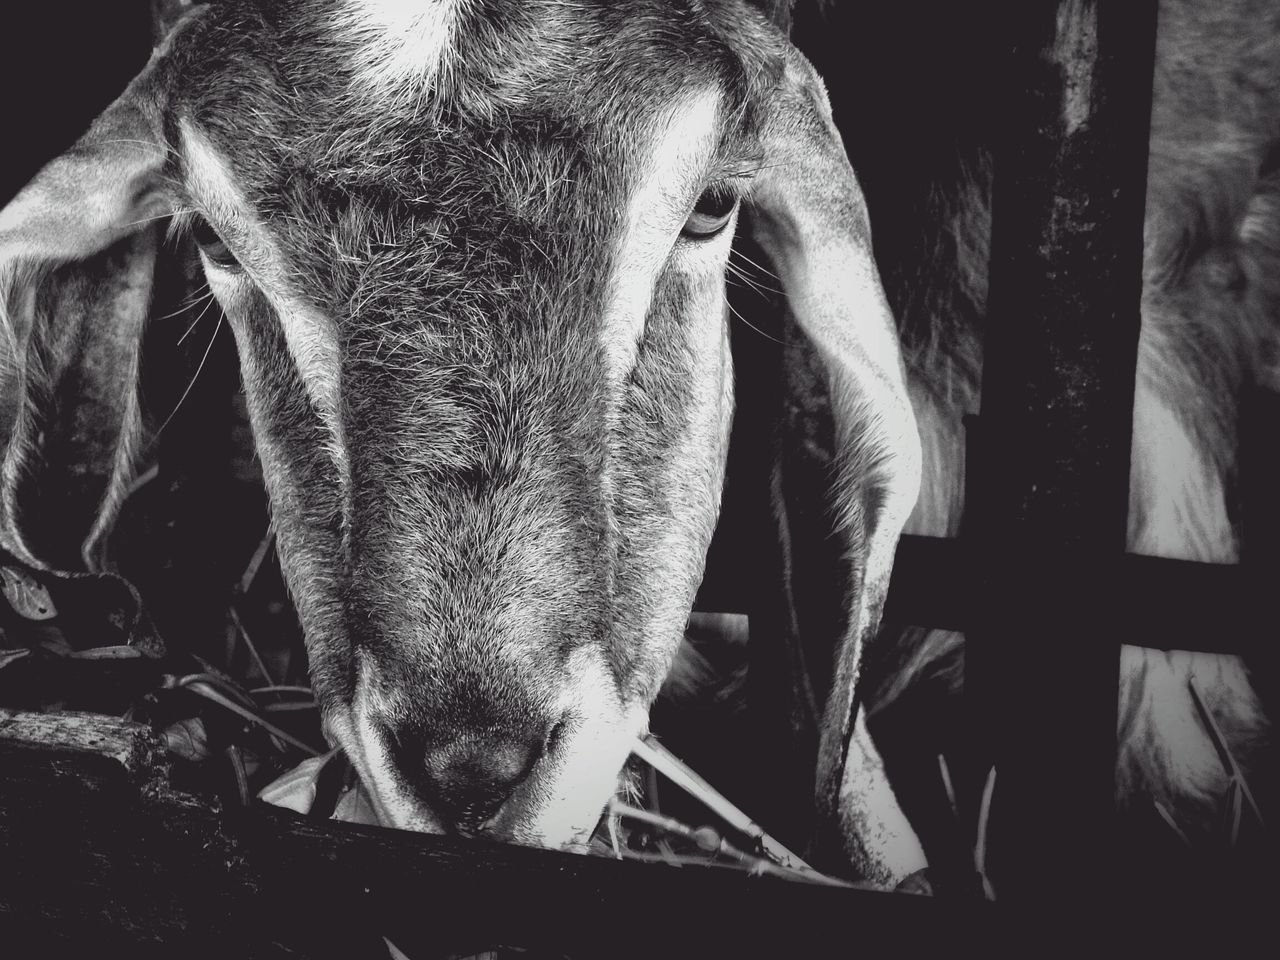 Goat Animal Animal Photography Close-up Of Goat Eating Animal Bnw Black And White Monochrome Photography